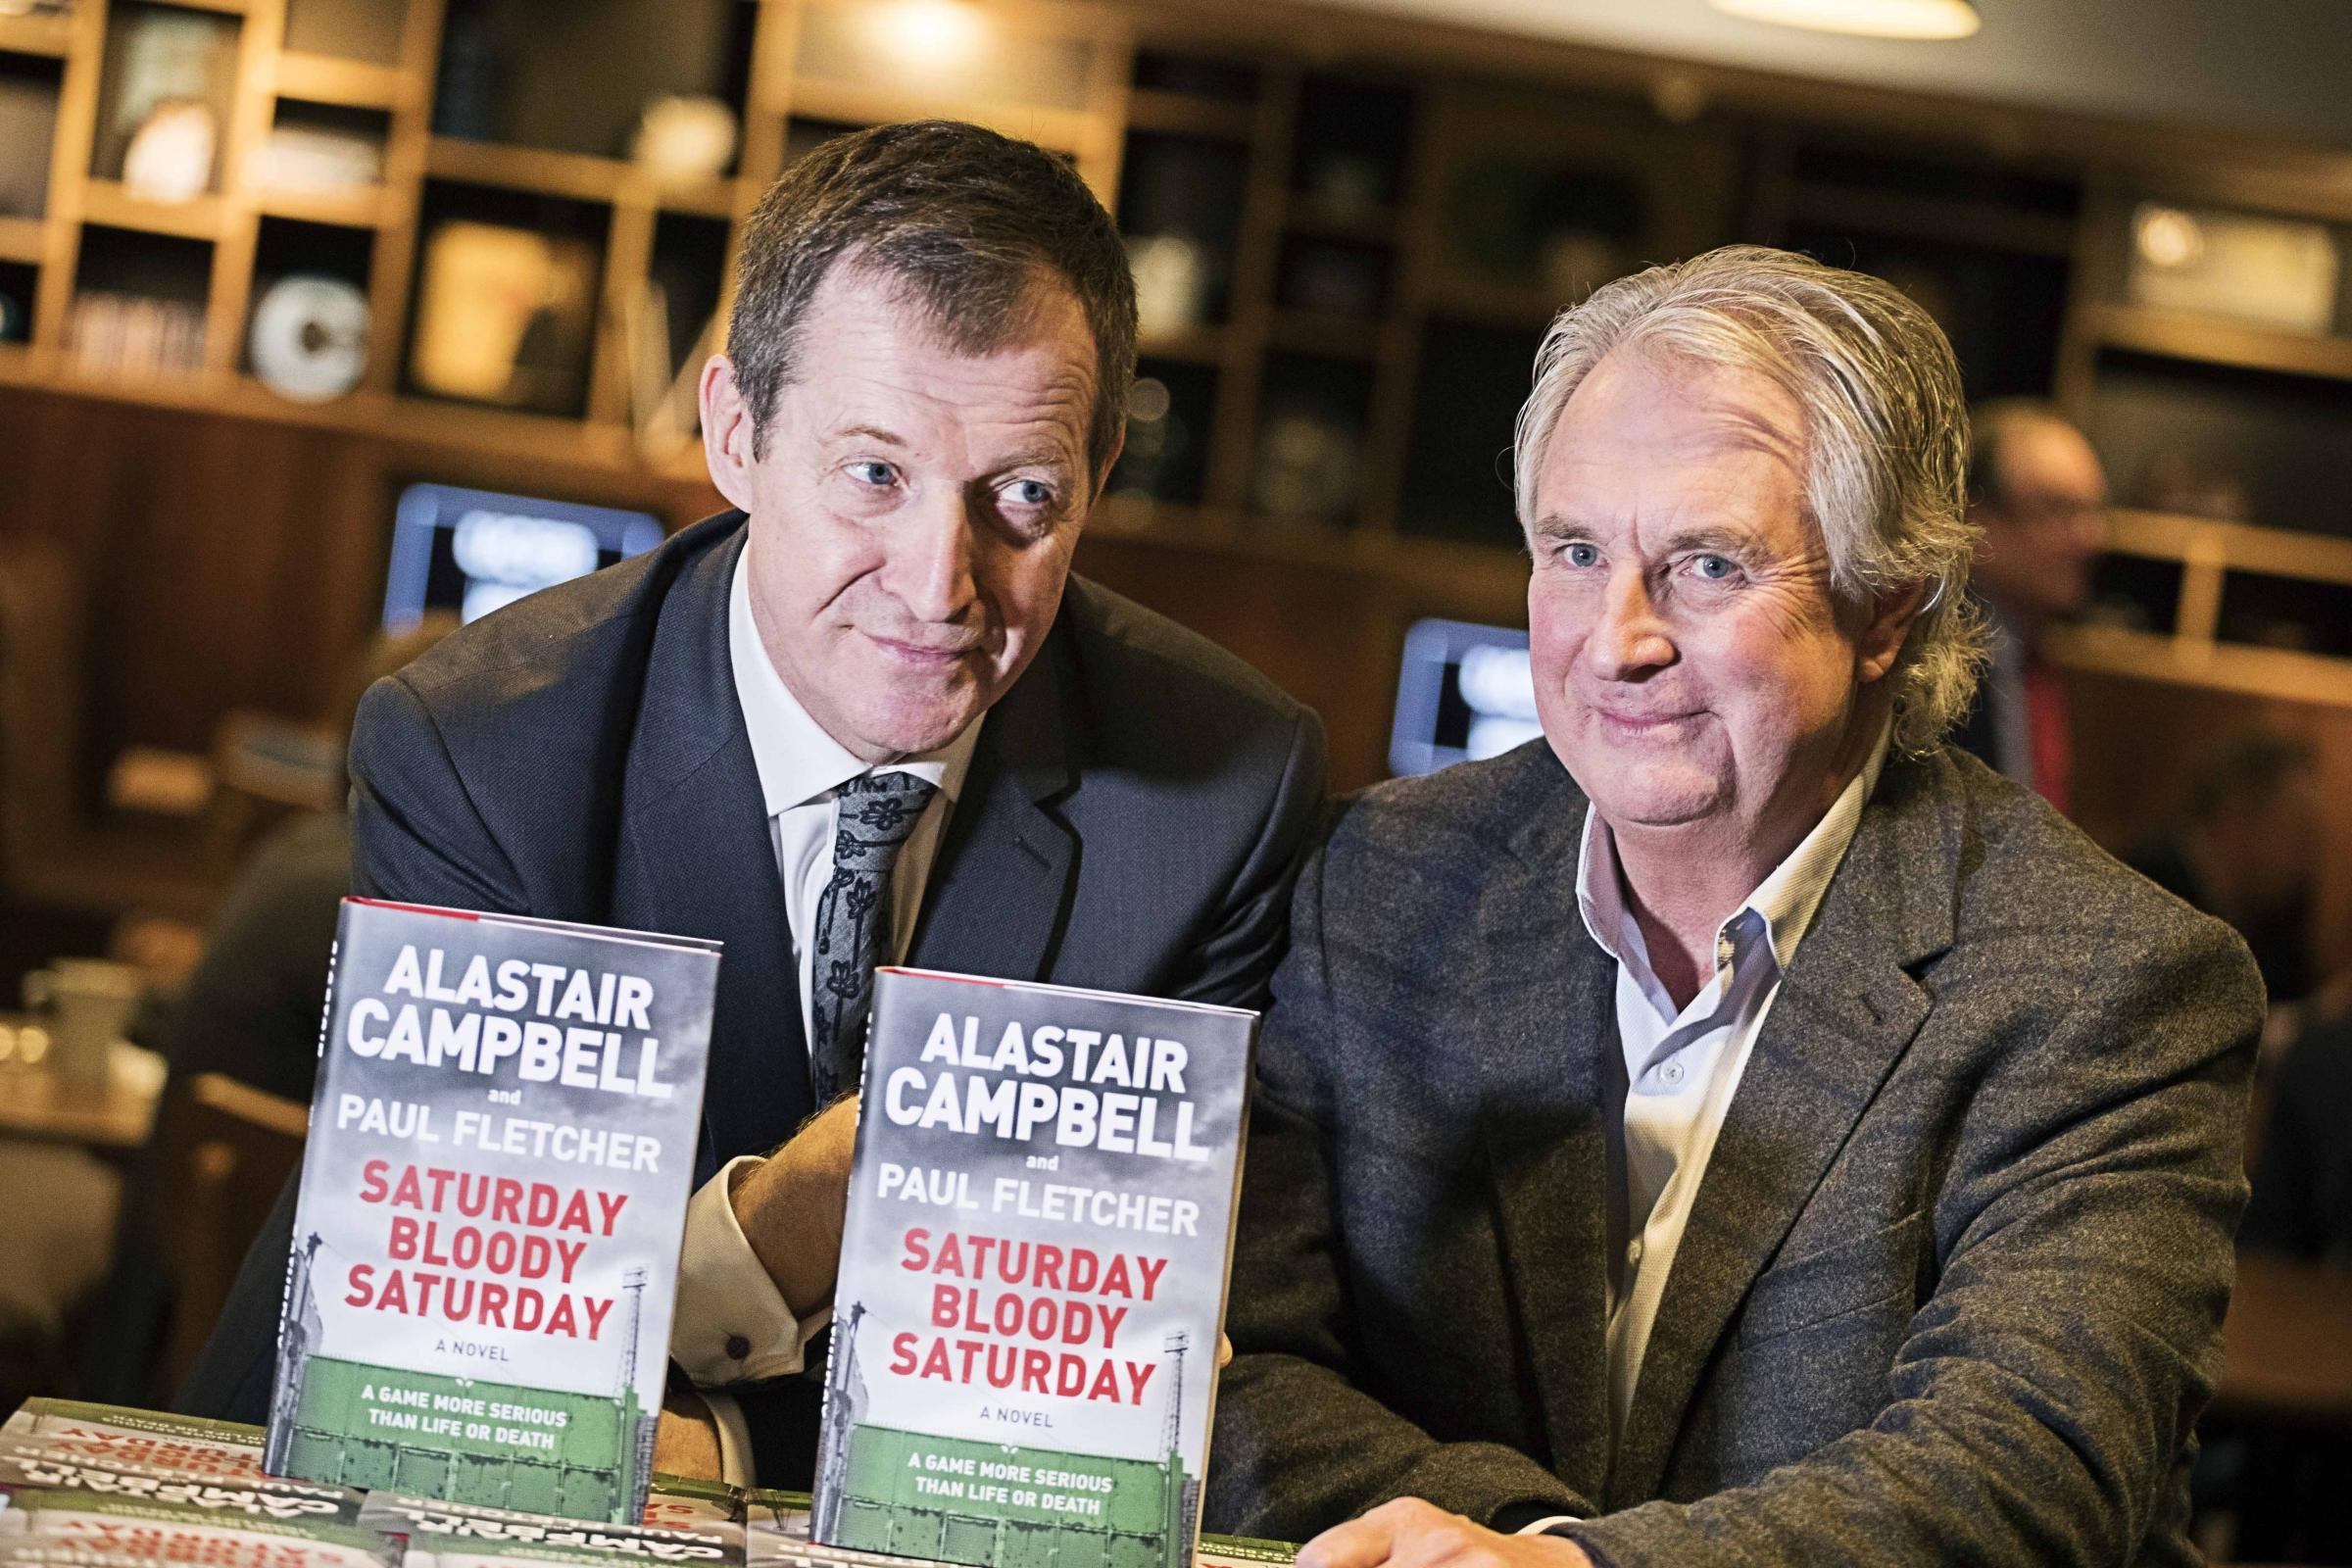 Alastair Campbell and Paul Fletcher at the launch of Saturday Bloody Saturday